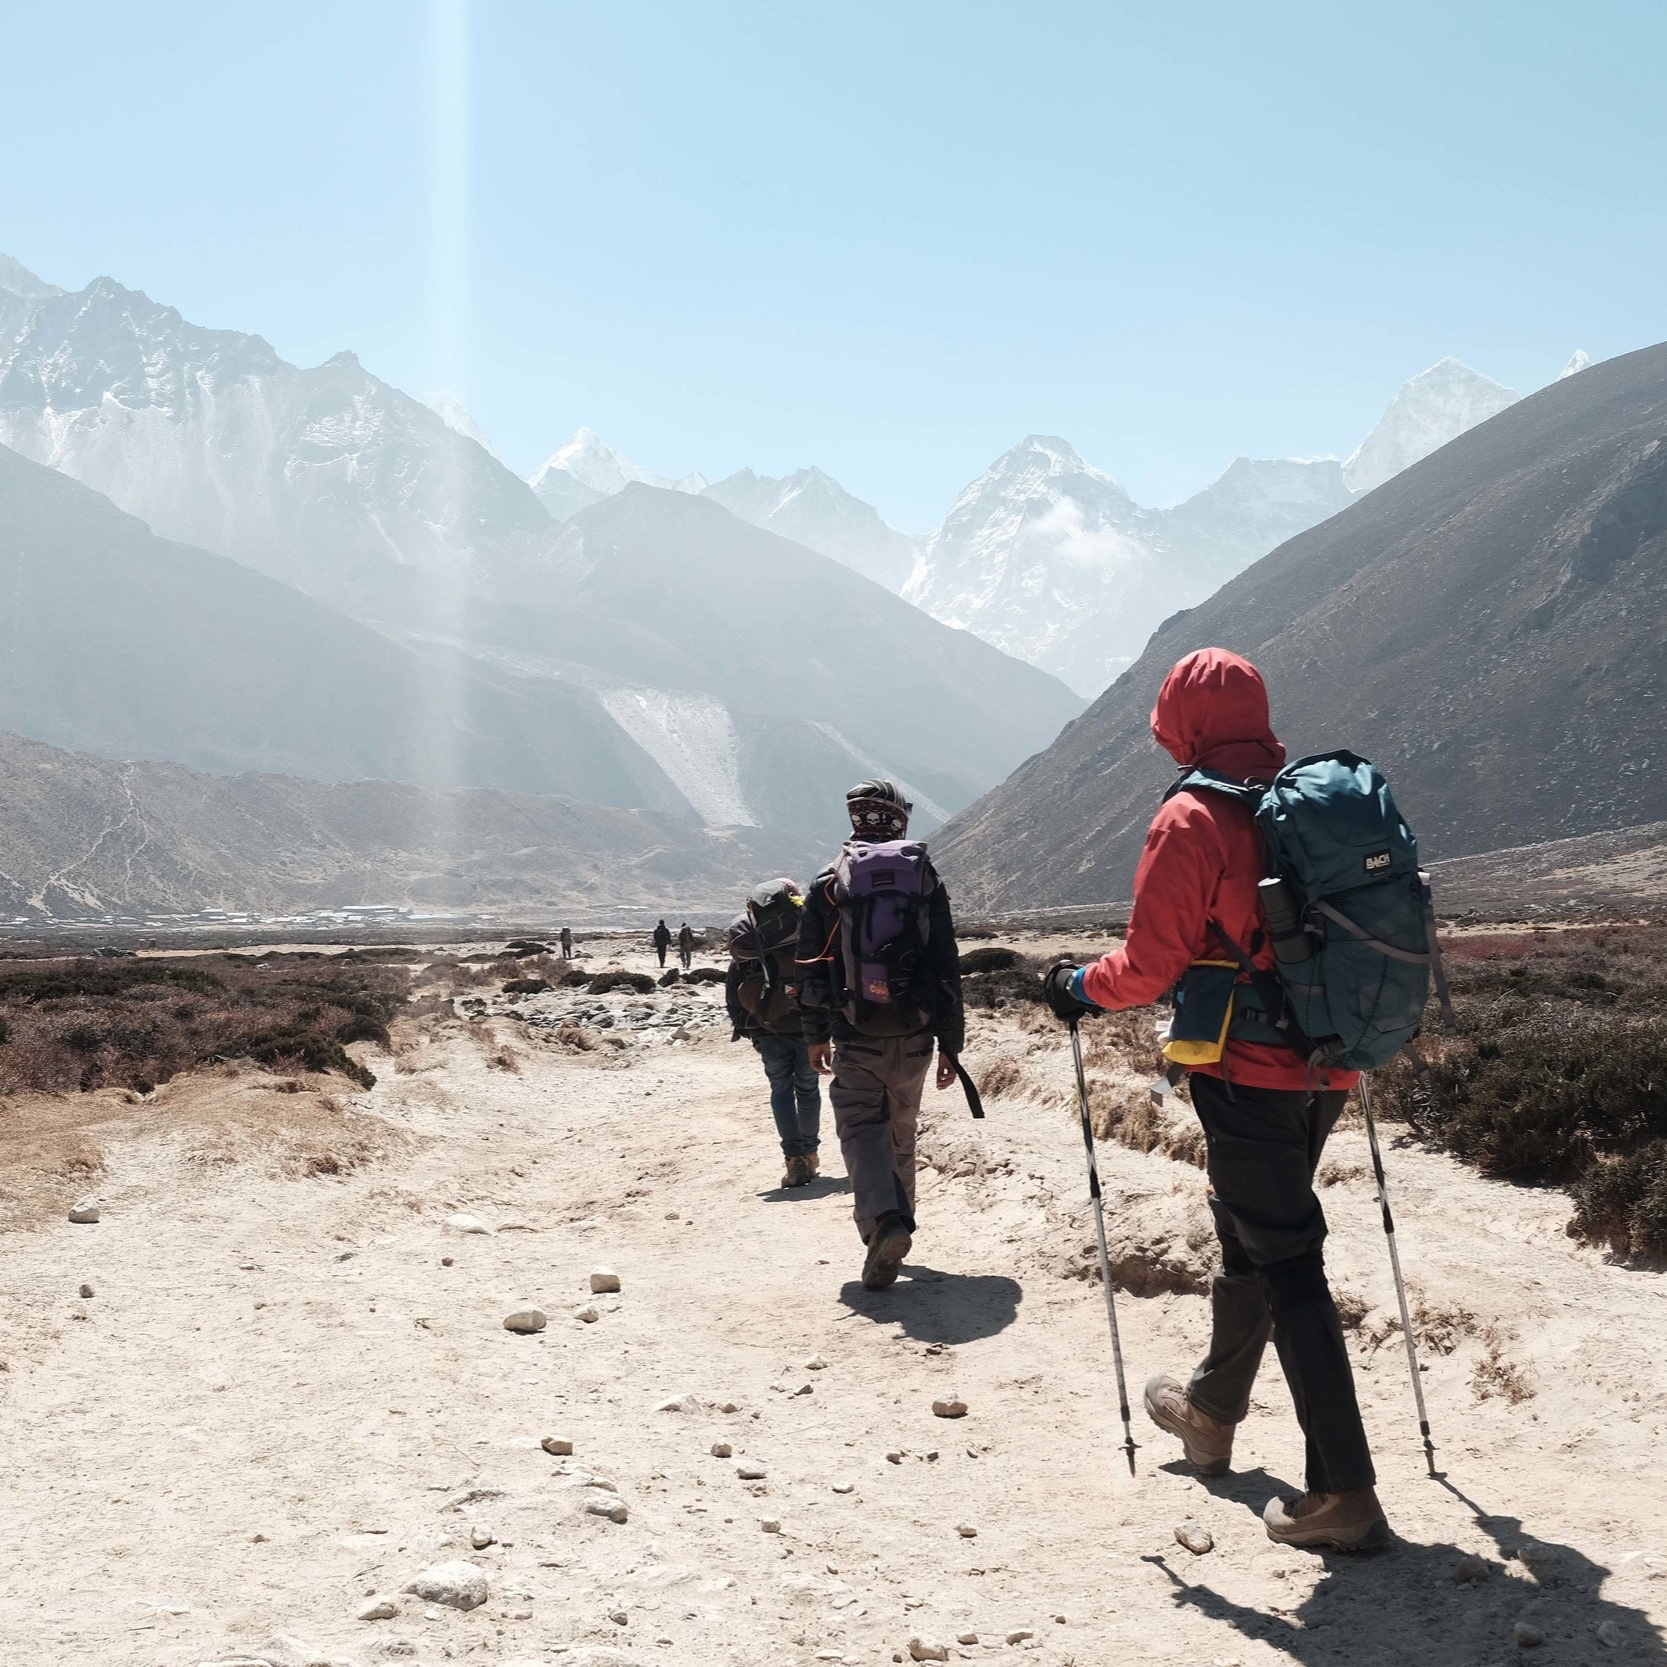 """March 22 - Gentle day of trekking on """"Nepali flat"""" terrain… a little up, a little downFollow a trail along a ridge through a forest, before it opens up in a pasture and you arrive at ChistibungEvening guided meditation"""